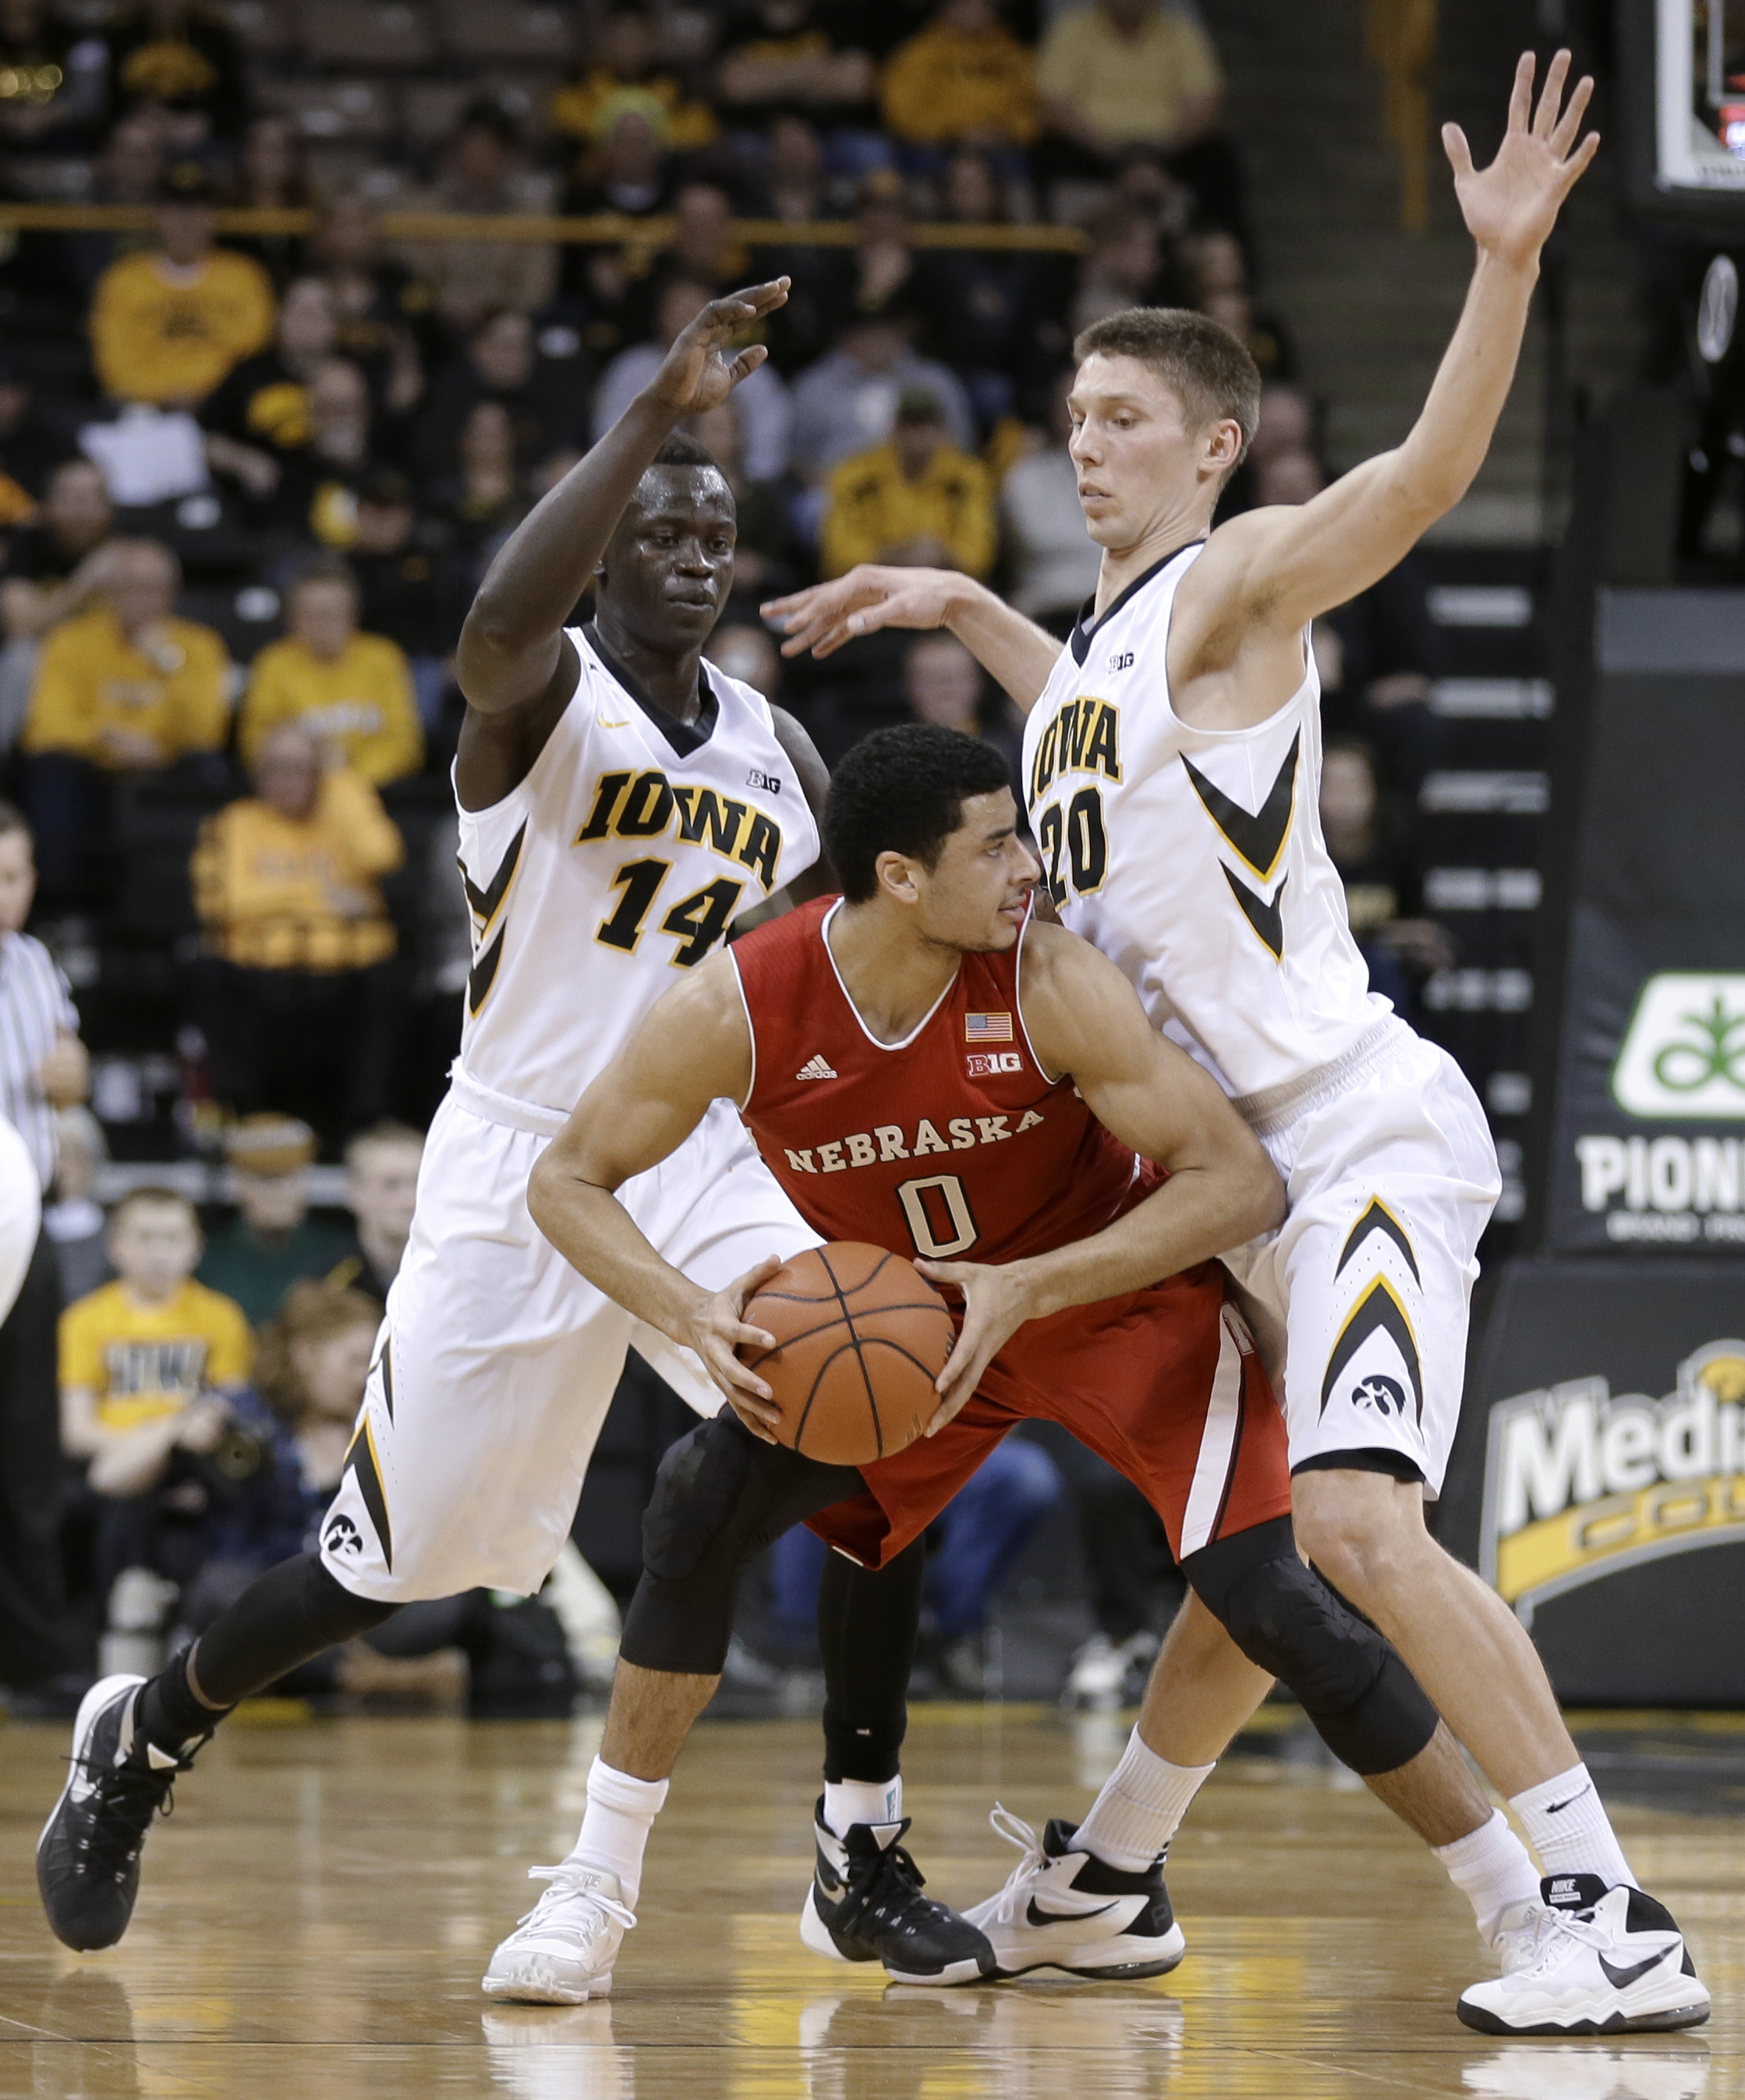 Nebraska's Tai Webster (0) looks to break the pressure defense by Iowa's Peter Jok, left, and Jarrod Uthoff during the first half of an NCAA college basketball game Tuesday, Jan. 5, 2016, in Iowa City, Iowa. (AP Photo/Charlie Neibergall)